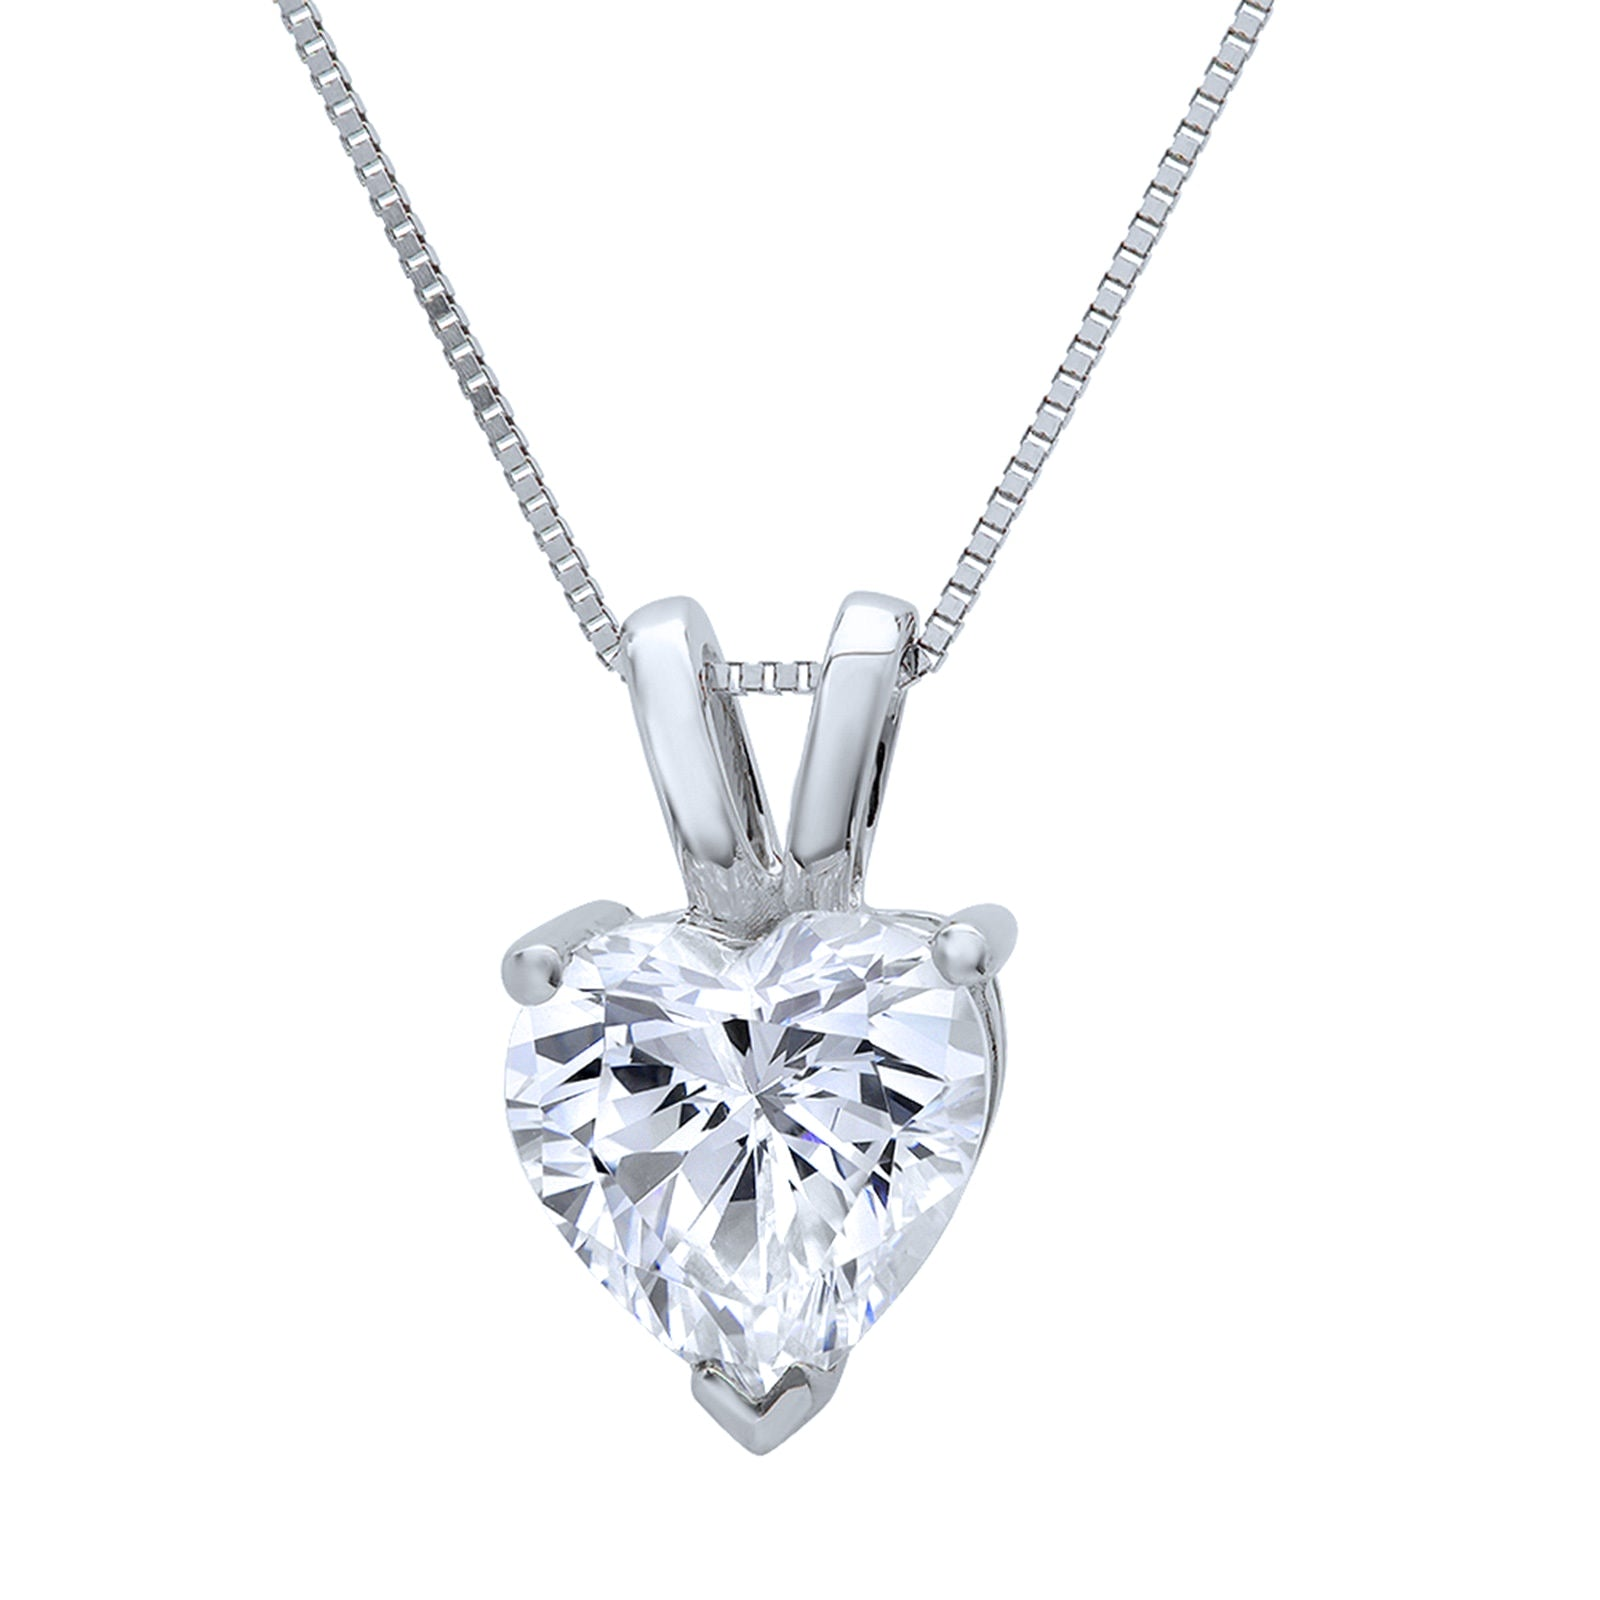 round pendant johnlewis rsp mogul gold online at solitaire brilliant main necklace diamond white pdp buymogul